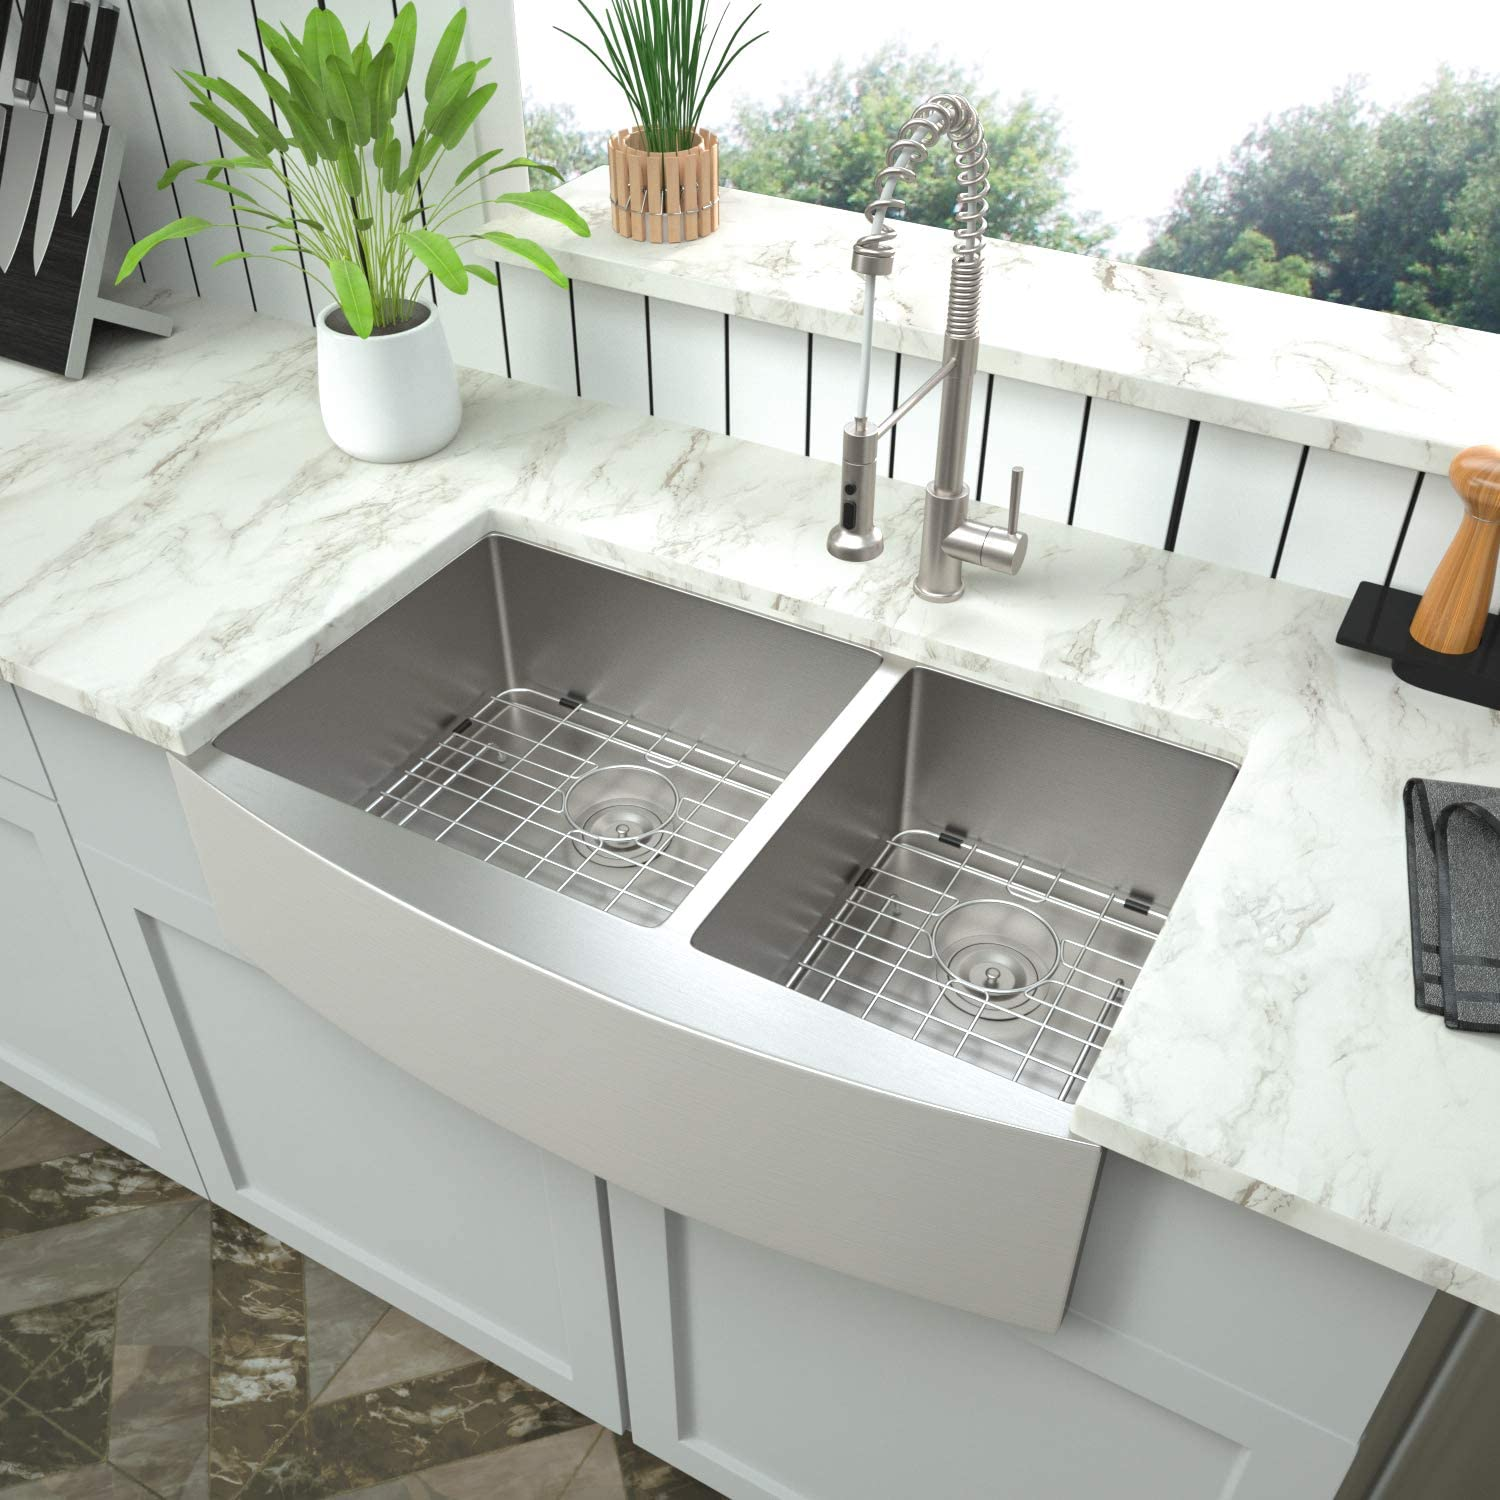 Buy Double Bowl Farmhouse Kitchen Sink Mocoloo 36x21 Inch Undermount Apron Front 60 40 Double Bowl Kitchen Sink 16 Gauge Stainless Steel Farm Style Offset Drain With Two 10 Deep Basin Online In Turkey B08qd89wlv